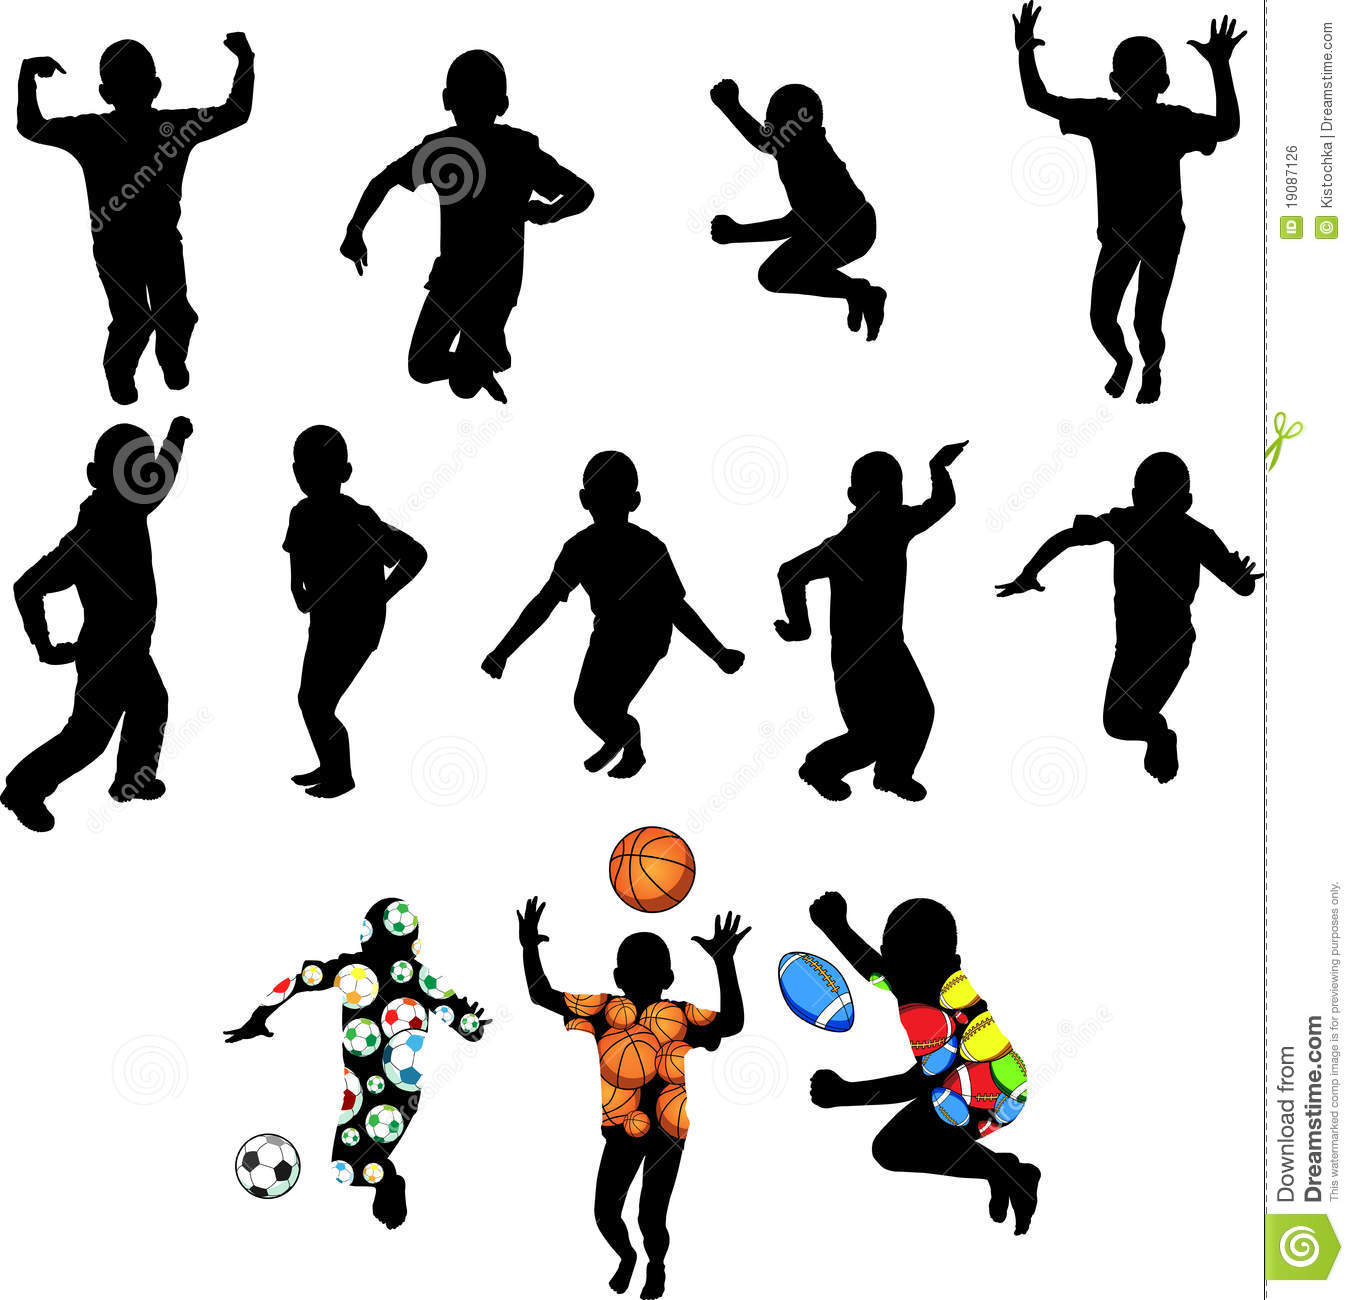 Silhouettes Of Children In Movement Royalty Free Stock Image.